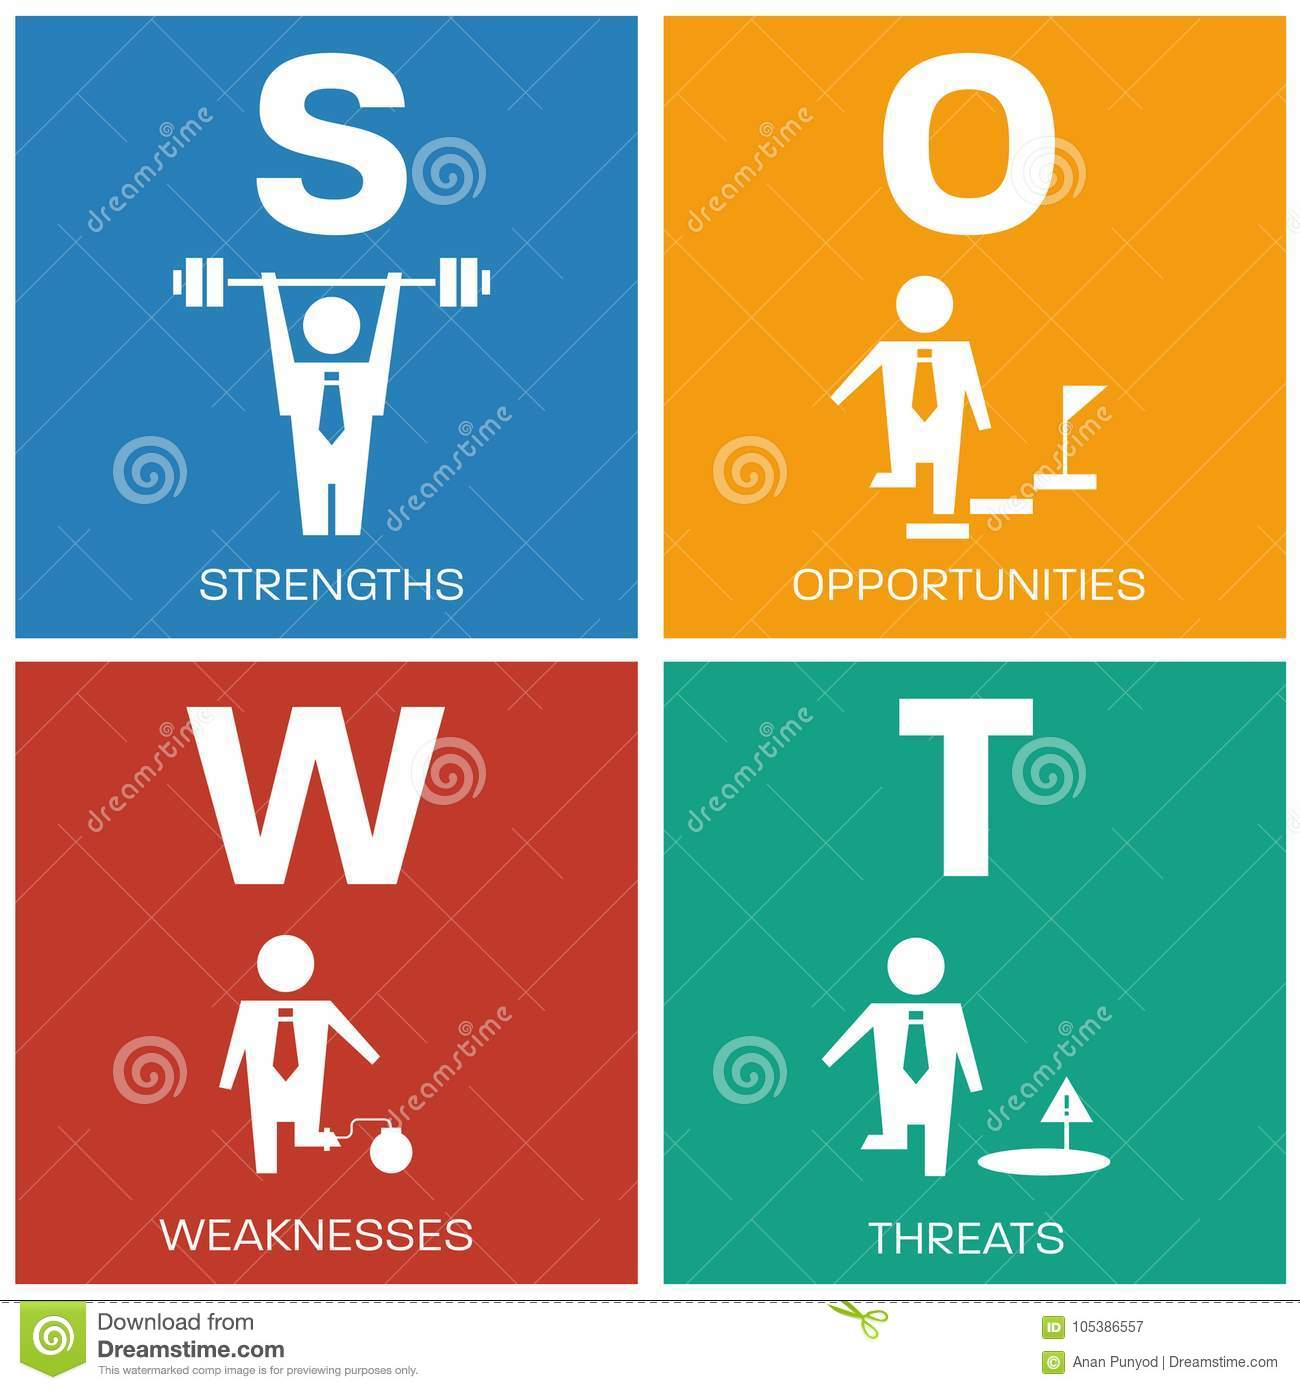 Swot Strength Opportunities And Threats With Business Block Diagram Design Human Sign In Vector